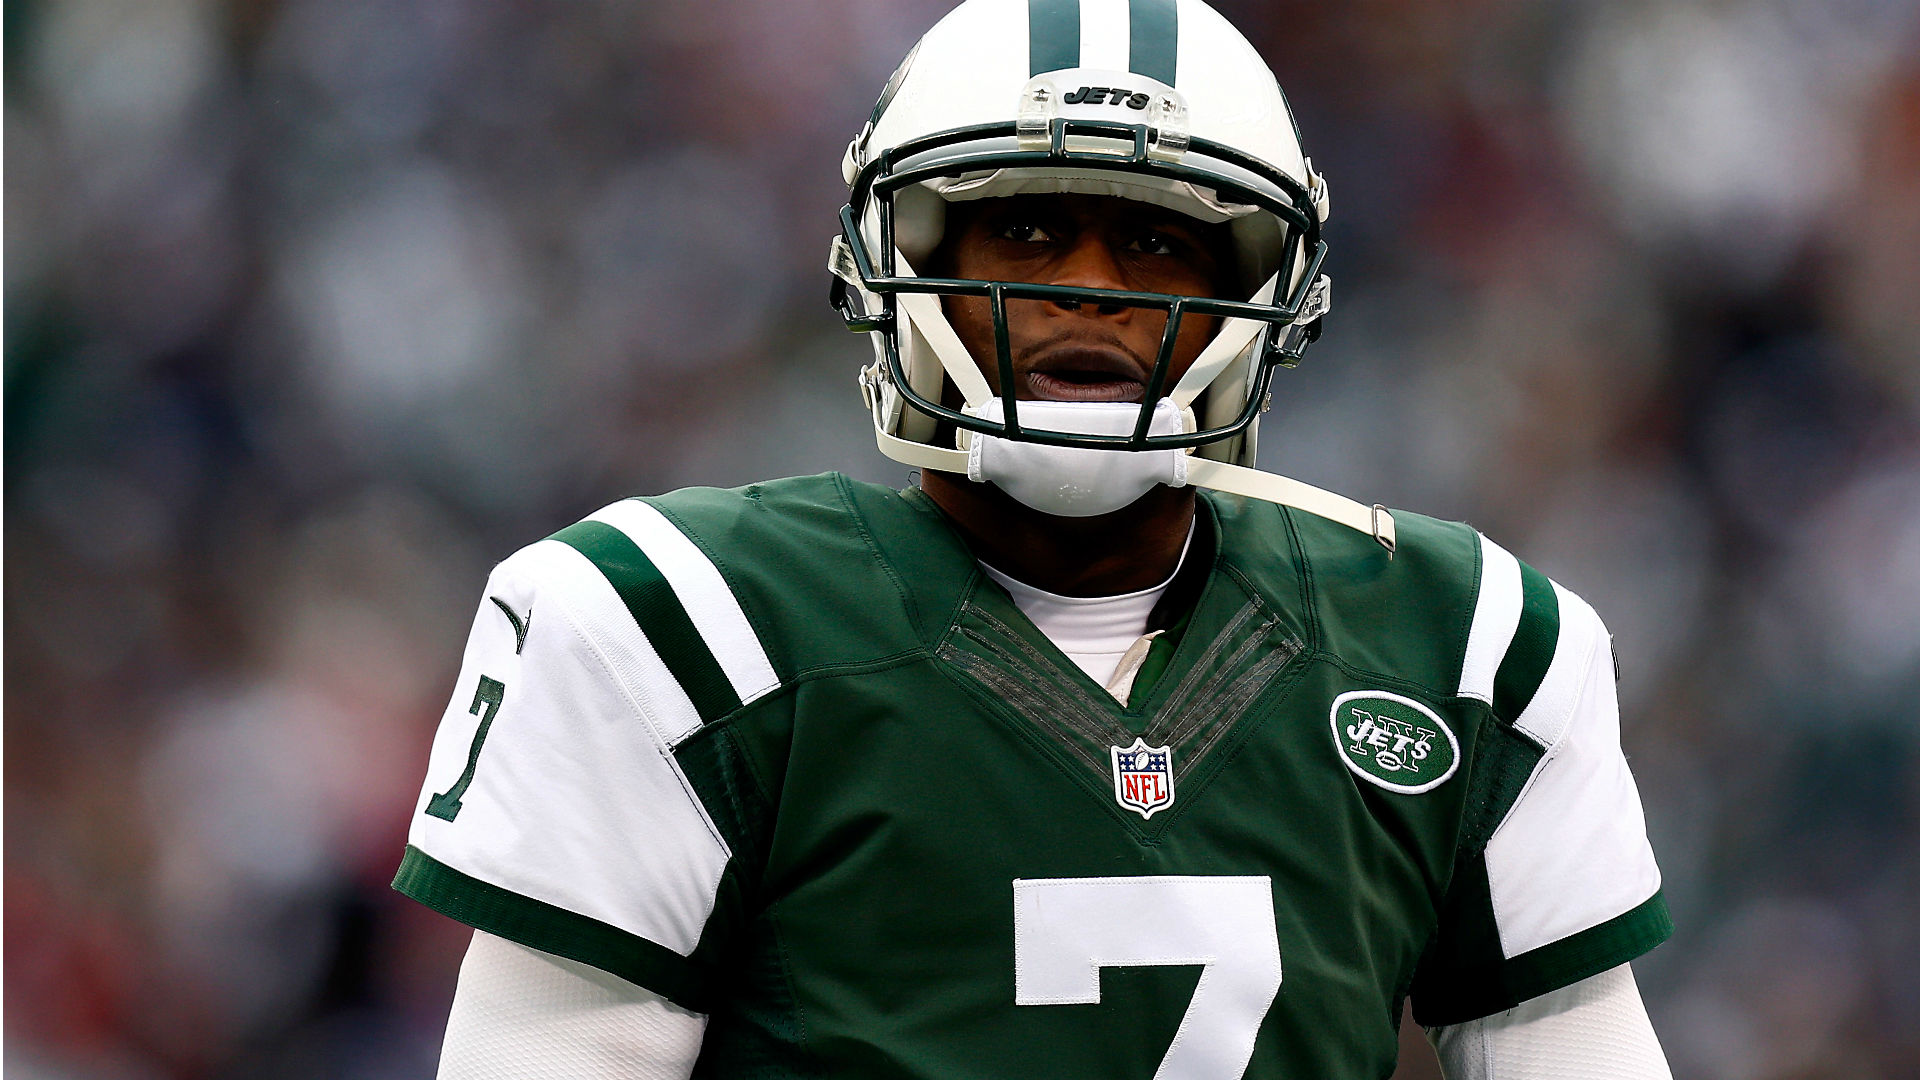 Jets' Geno Smith still in a fight for his job, says Todd Bowles